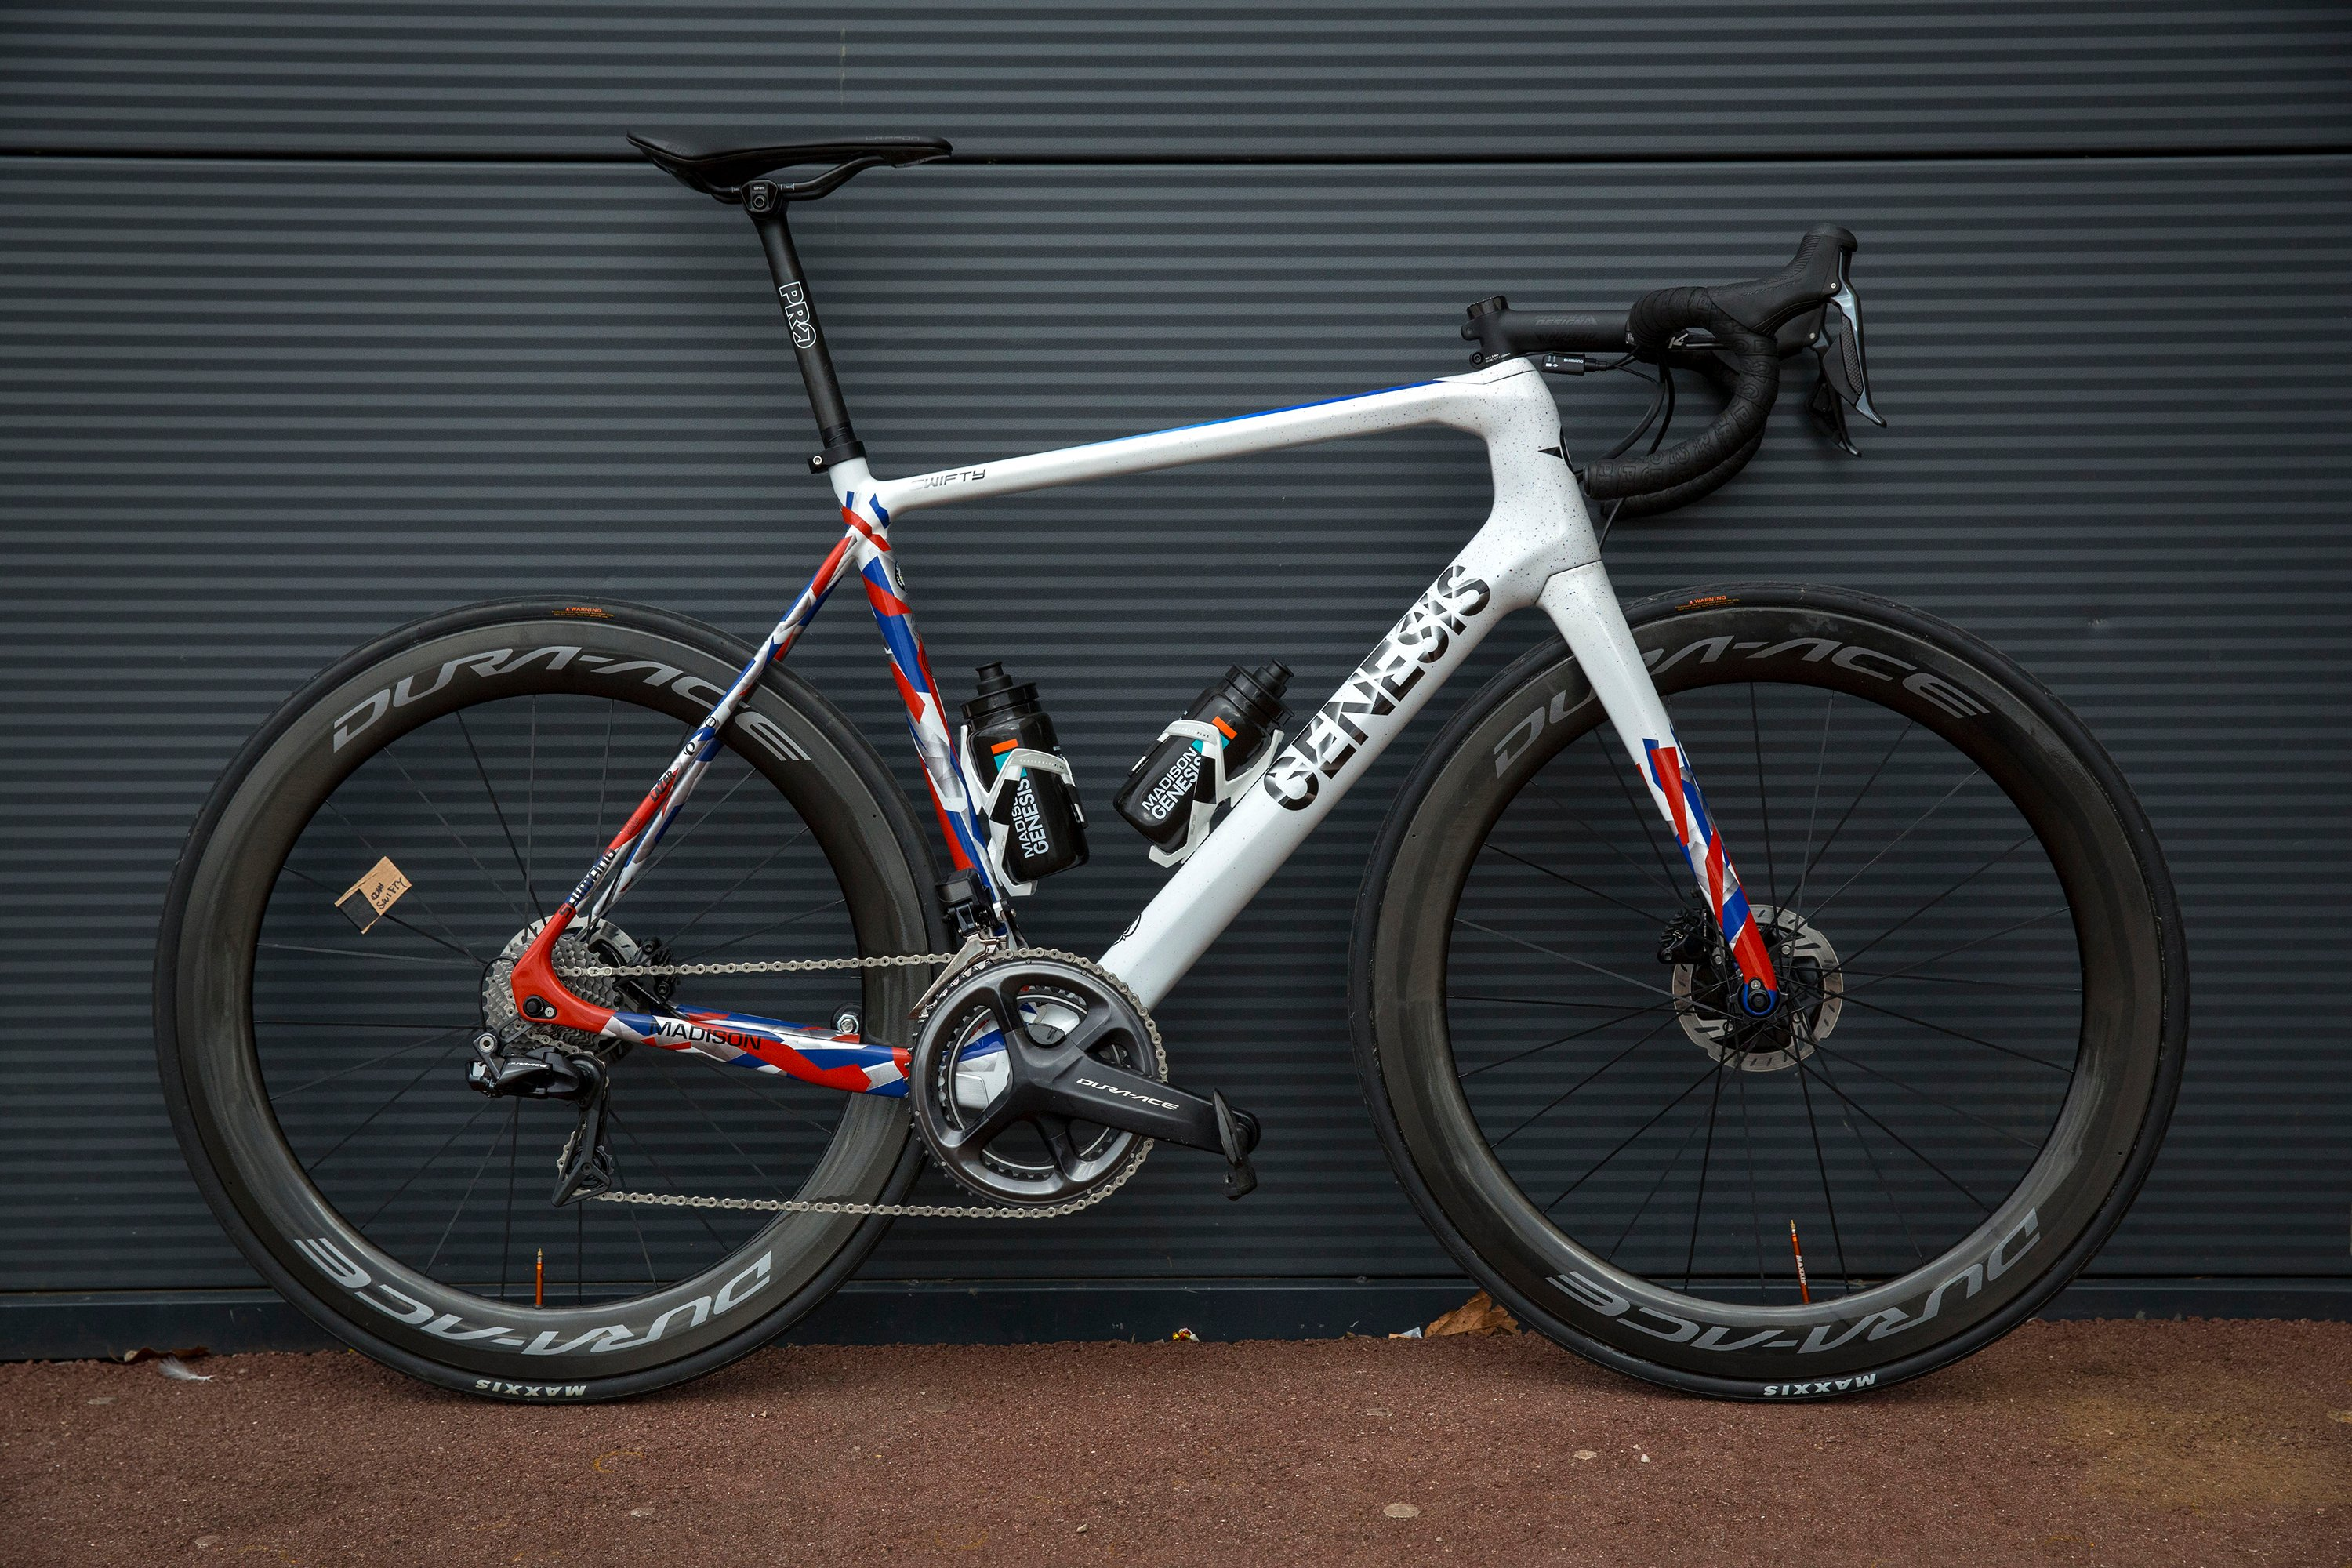 National Champion Connor Swift Gets A Special New Bike For